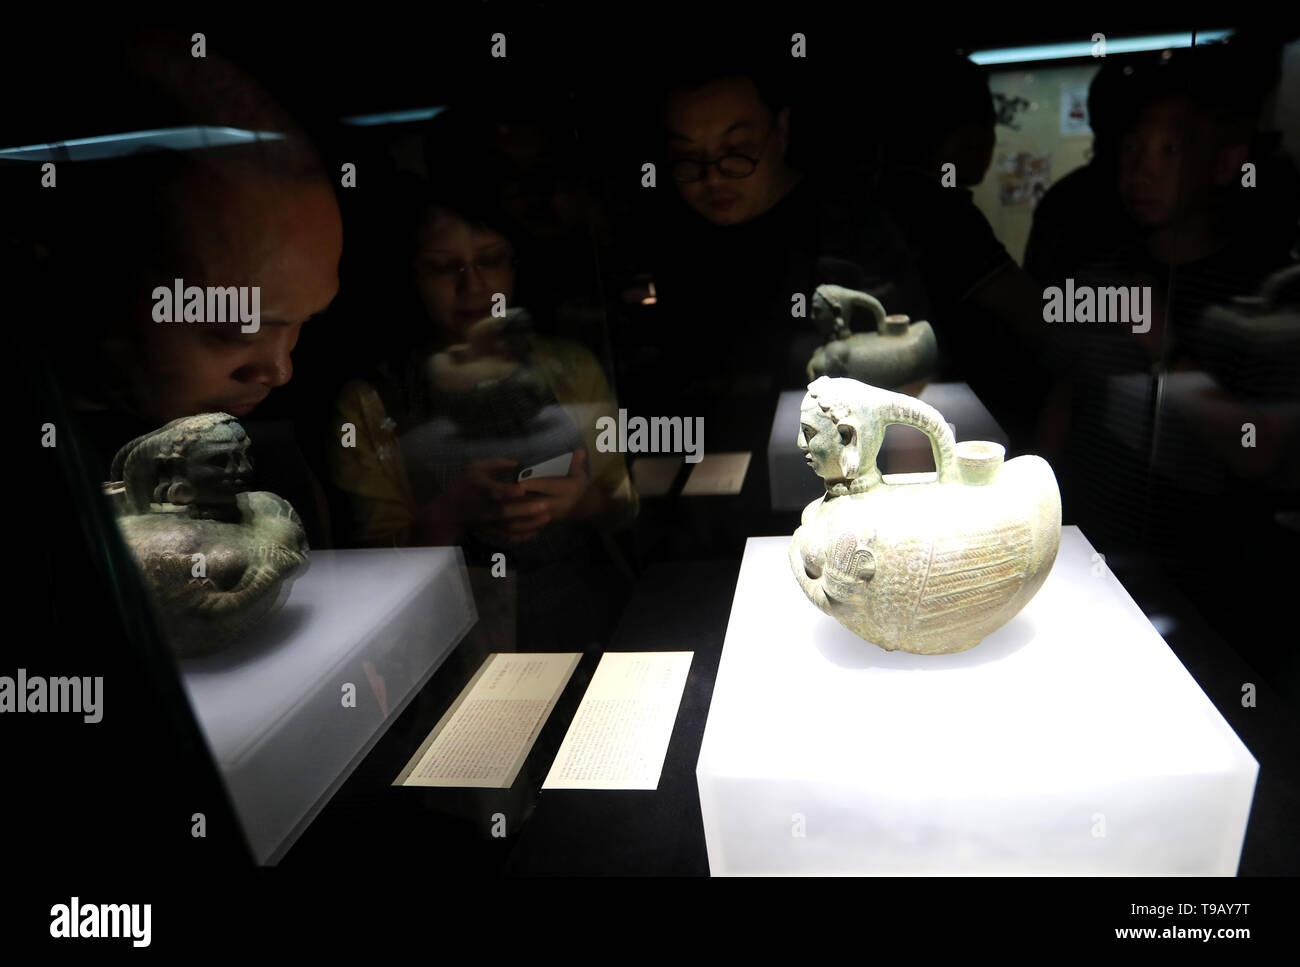 (190518) -- BEIJING, May 18, 2019 (Xinhua) -- Visitors view an exhibit at an exhibition of Afghan national treasures at Tsinghua University Art Museum in Beijing, capital of China, May 17, 2019. The exhibition displayed a total of 231 pieces of the national treasures and relics from Afghanistan. China is holding a rich variety of exhibitions and activities on the culture of Asian countries and regions as well as exchanges among them. (Xinhua/Pan Xu) - Stock Image